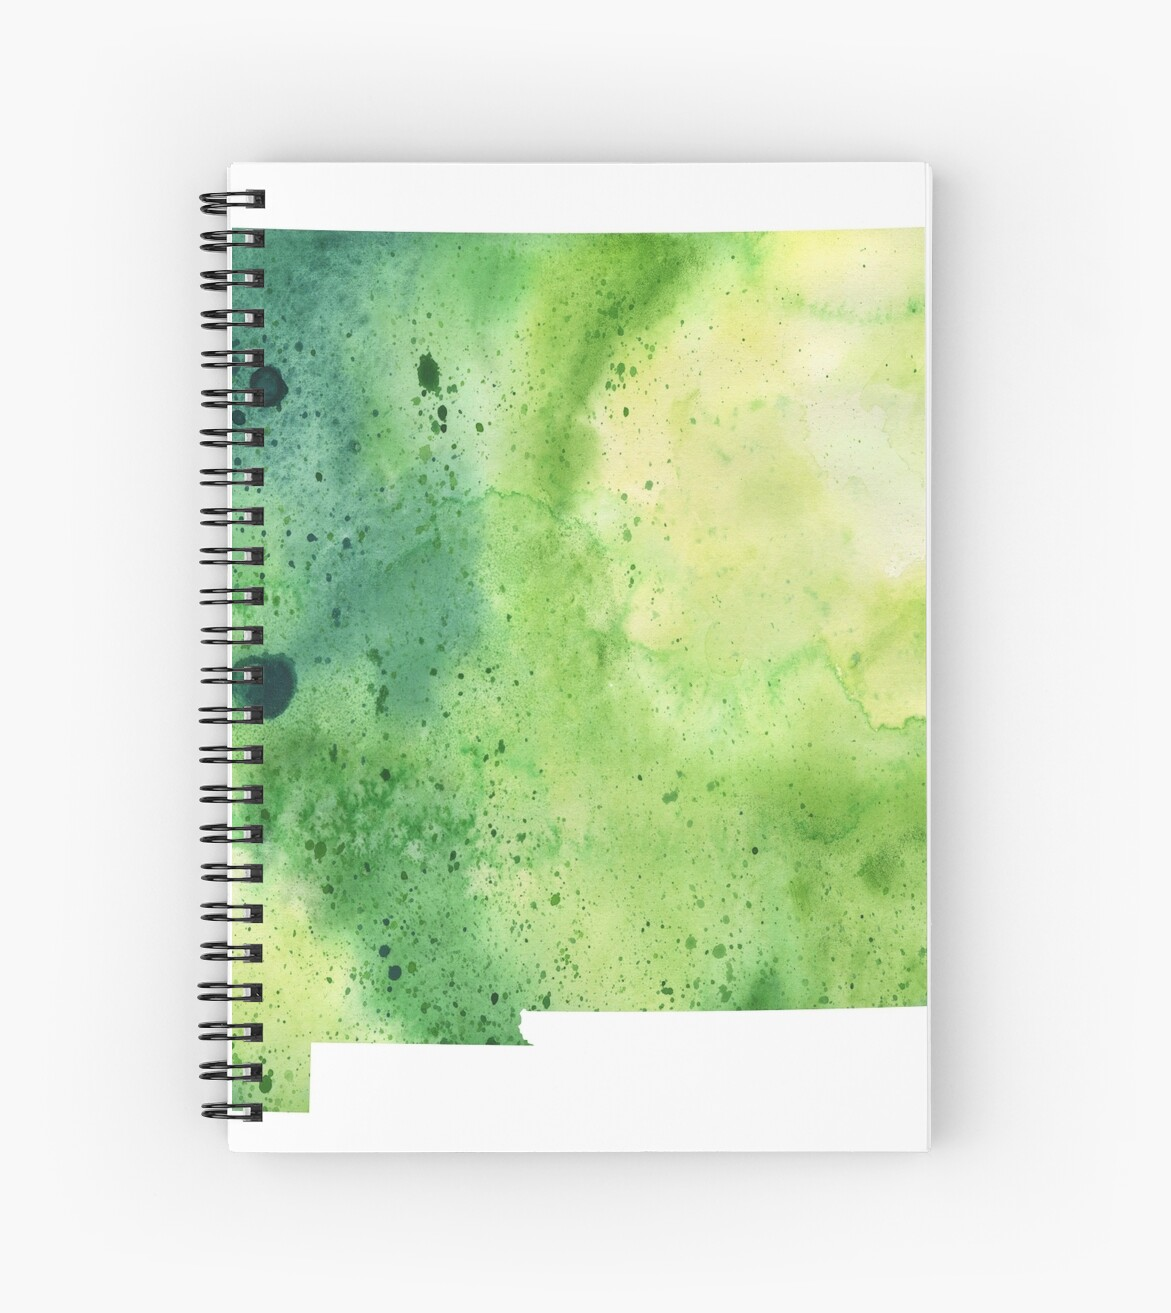 atercolor Map of New Mexico, USA in Green  by Andrea Hill